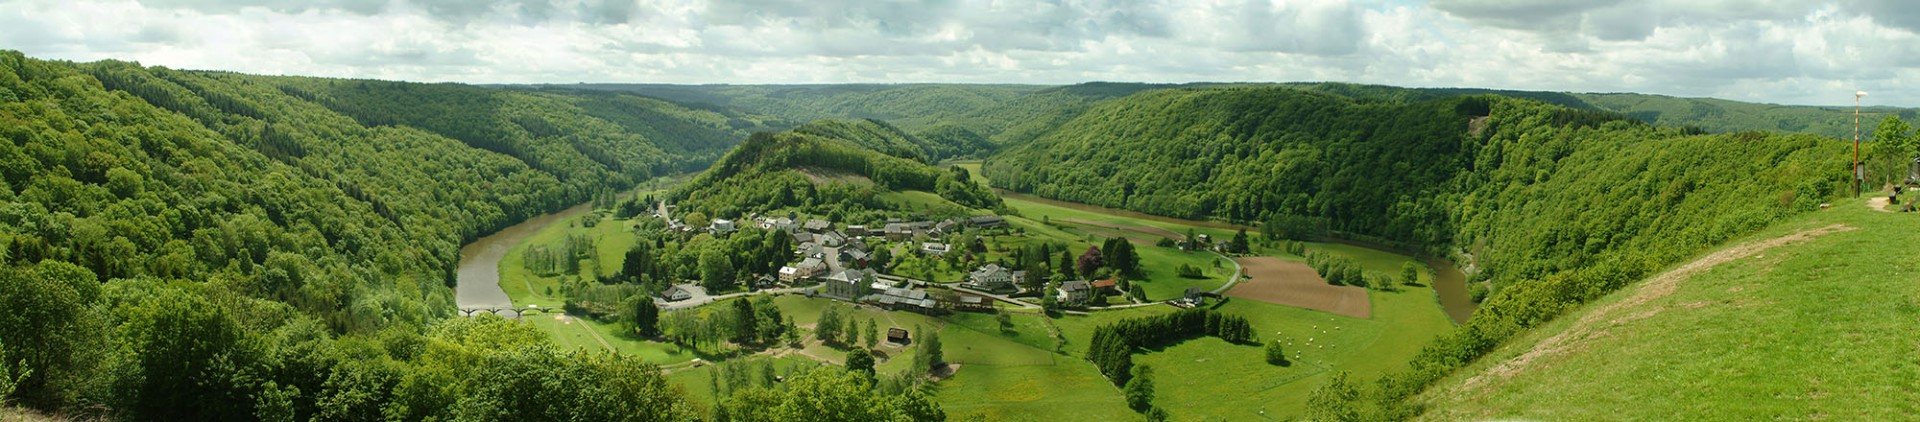 Luxembourg belge - Ardenne Incoming